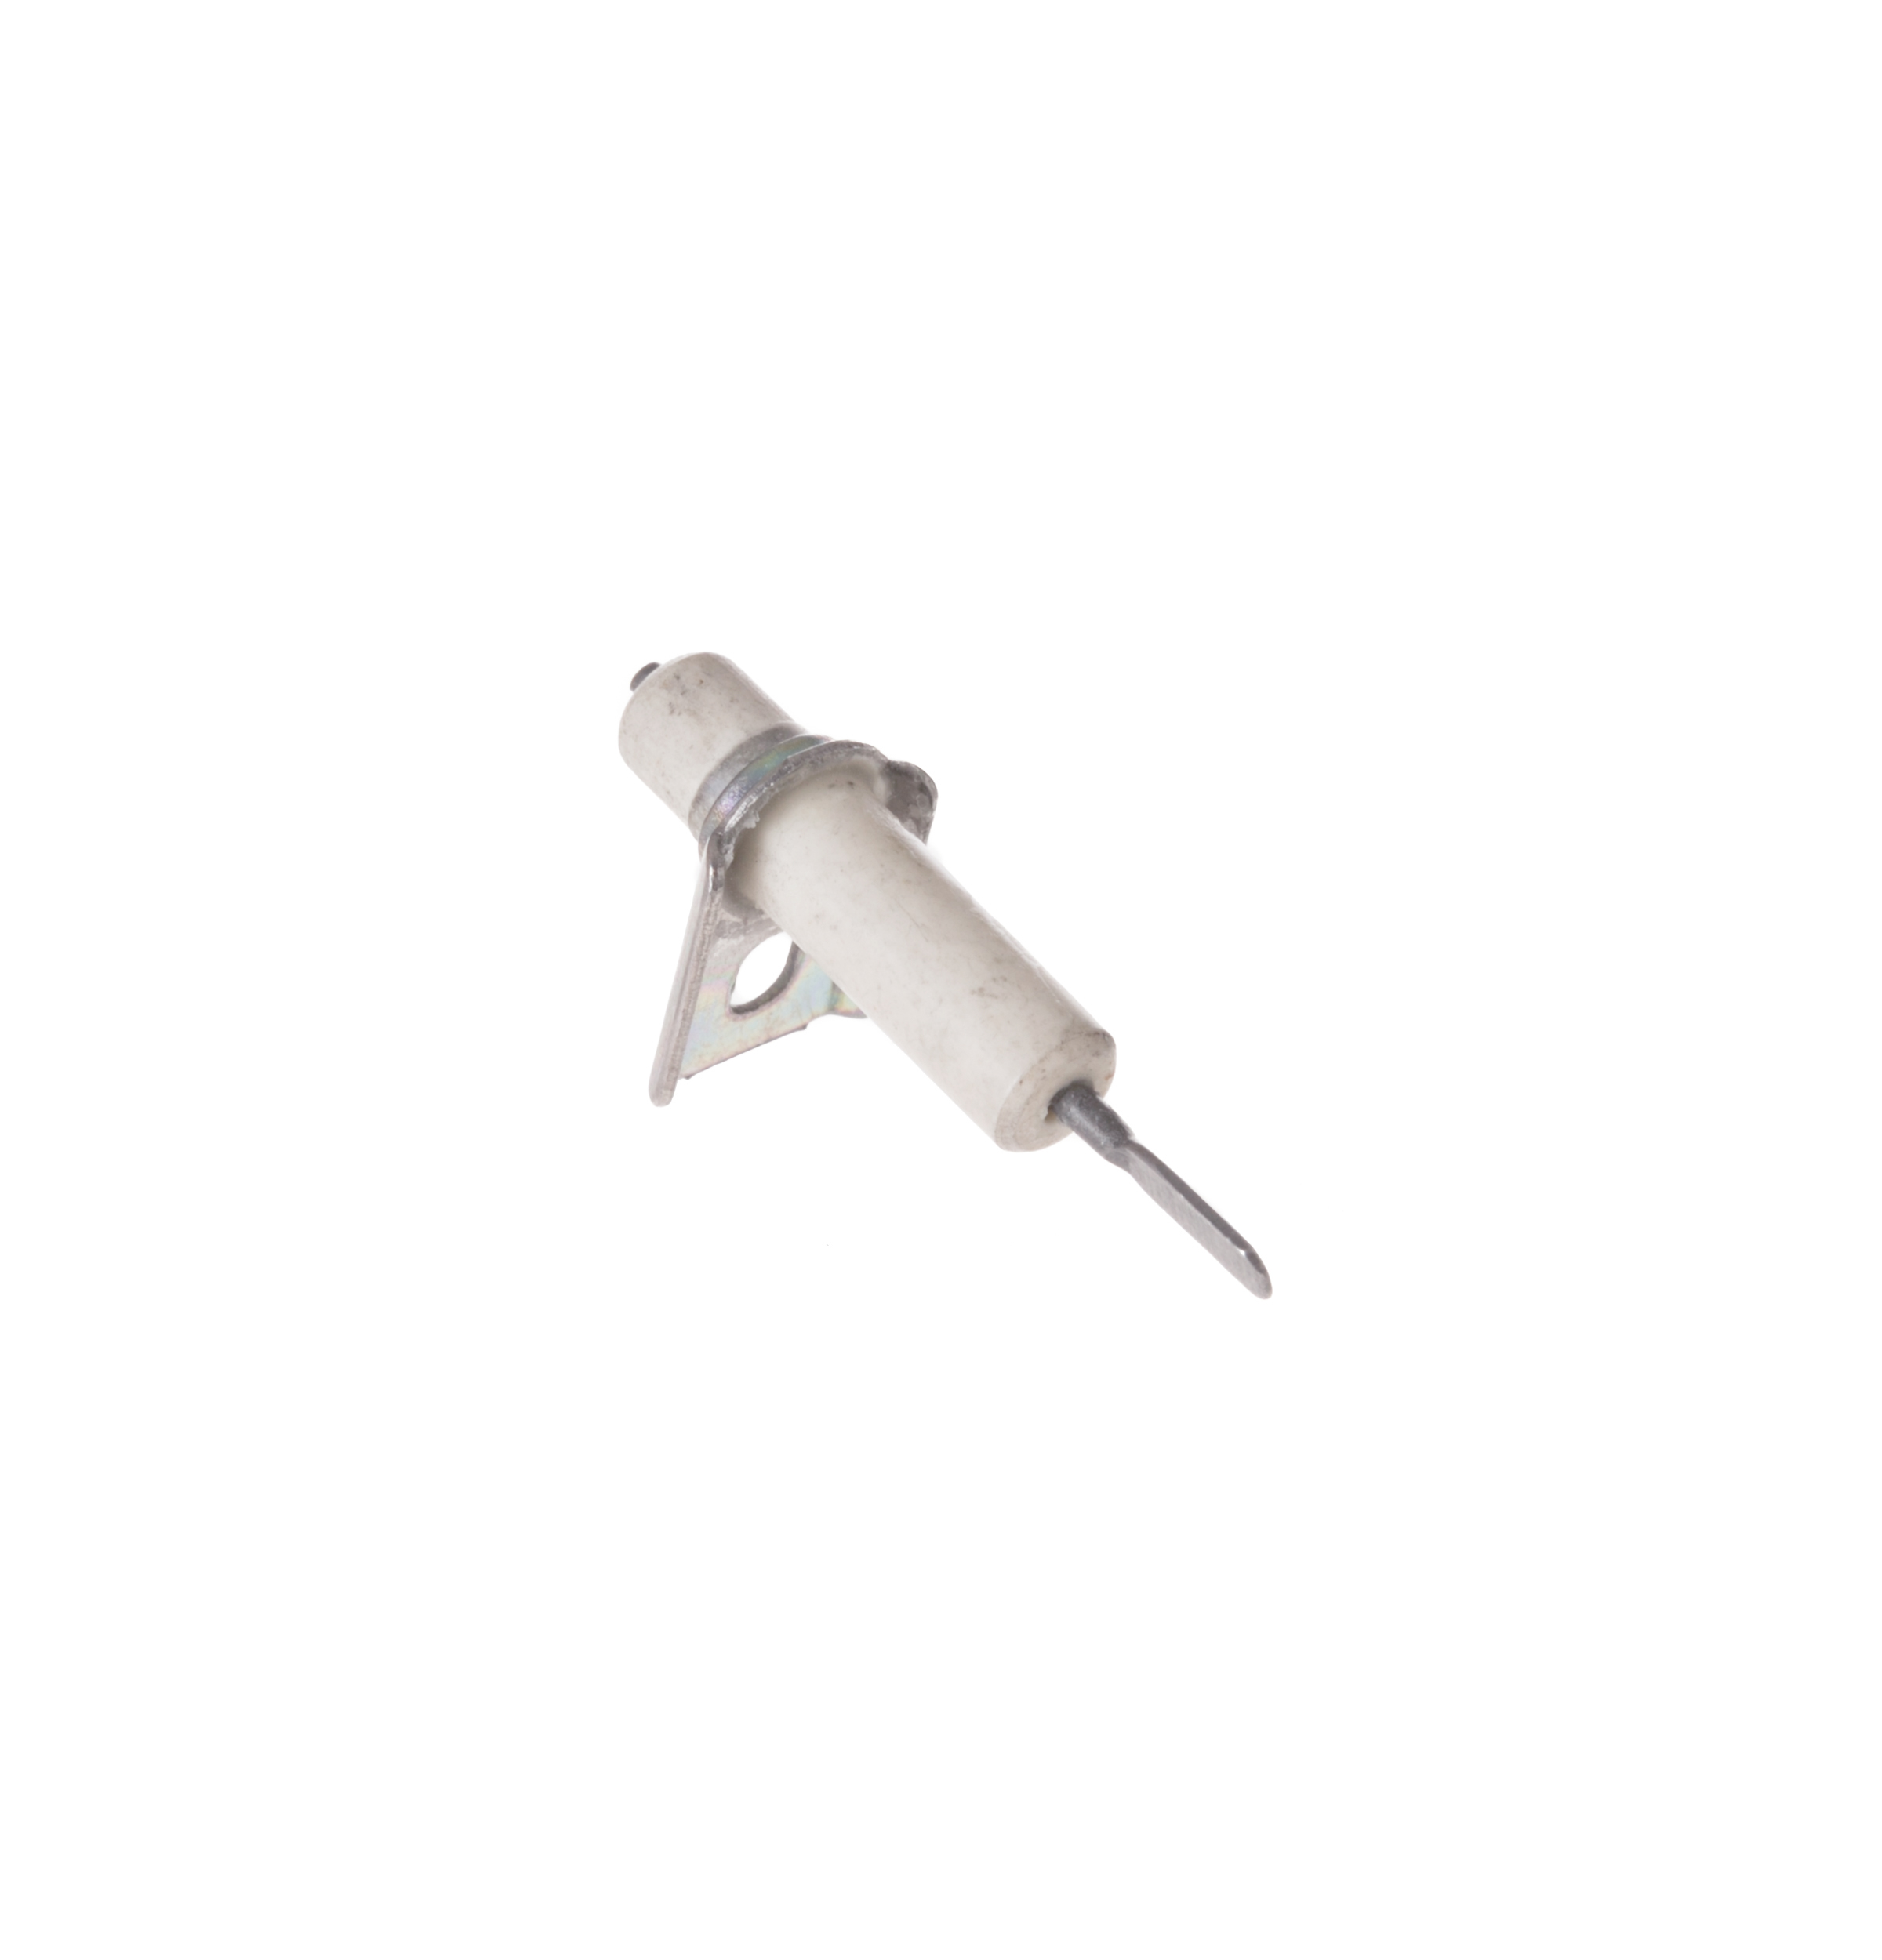 Kenmore 363 356630 Surface Burner Igniter  Lower  Right